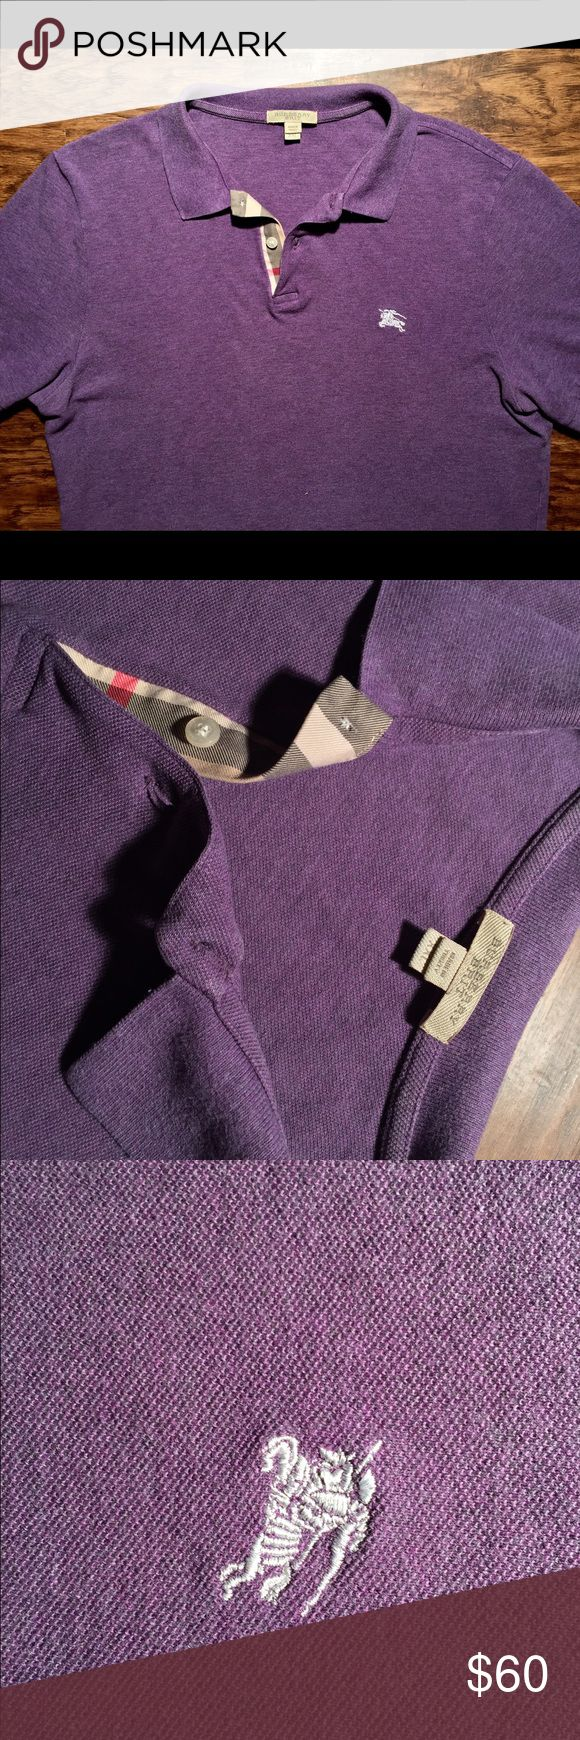 Burberry shirt XL Men's short sleeve polo Burberry shirt purple heather in men's size XL ( tag says xxl but runs small ) Burberry Shirts Polos